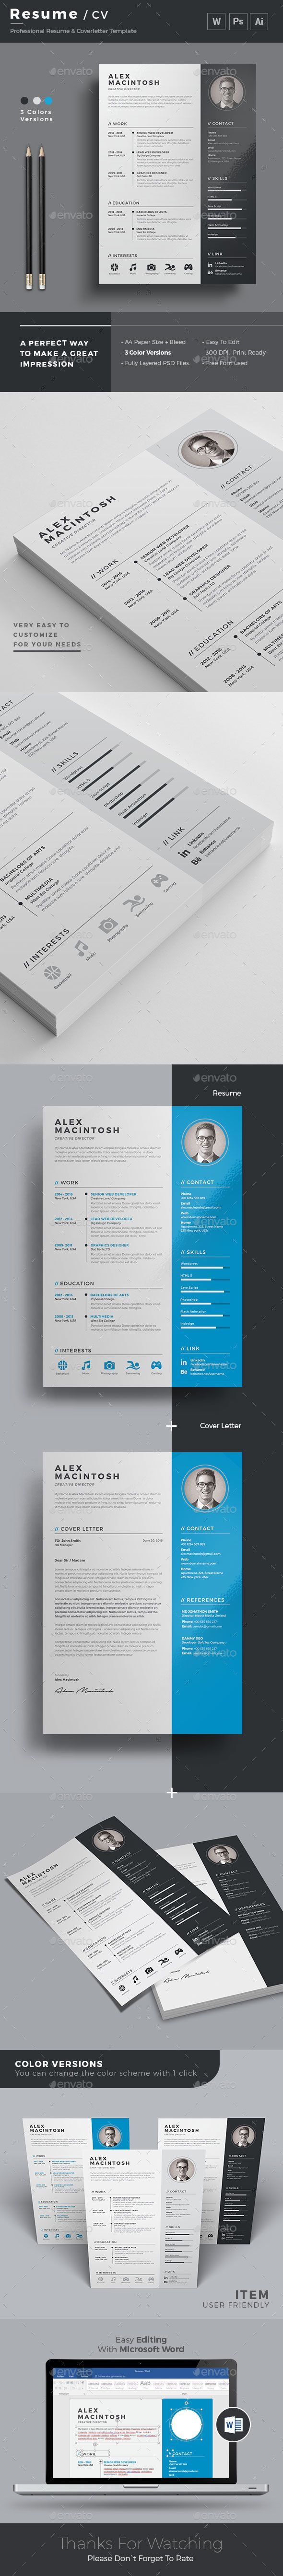 Cv Templates Design%0A Resume Template PSD  MS Word  Download here  http   graphicriver